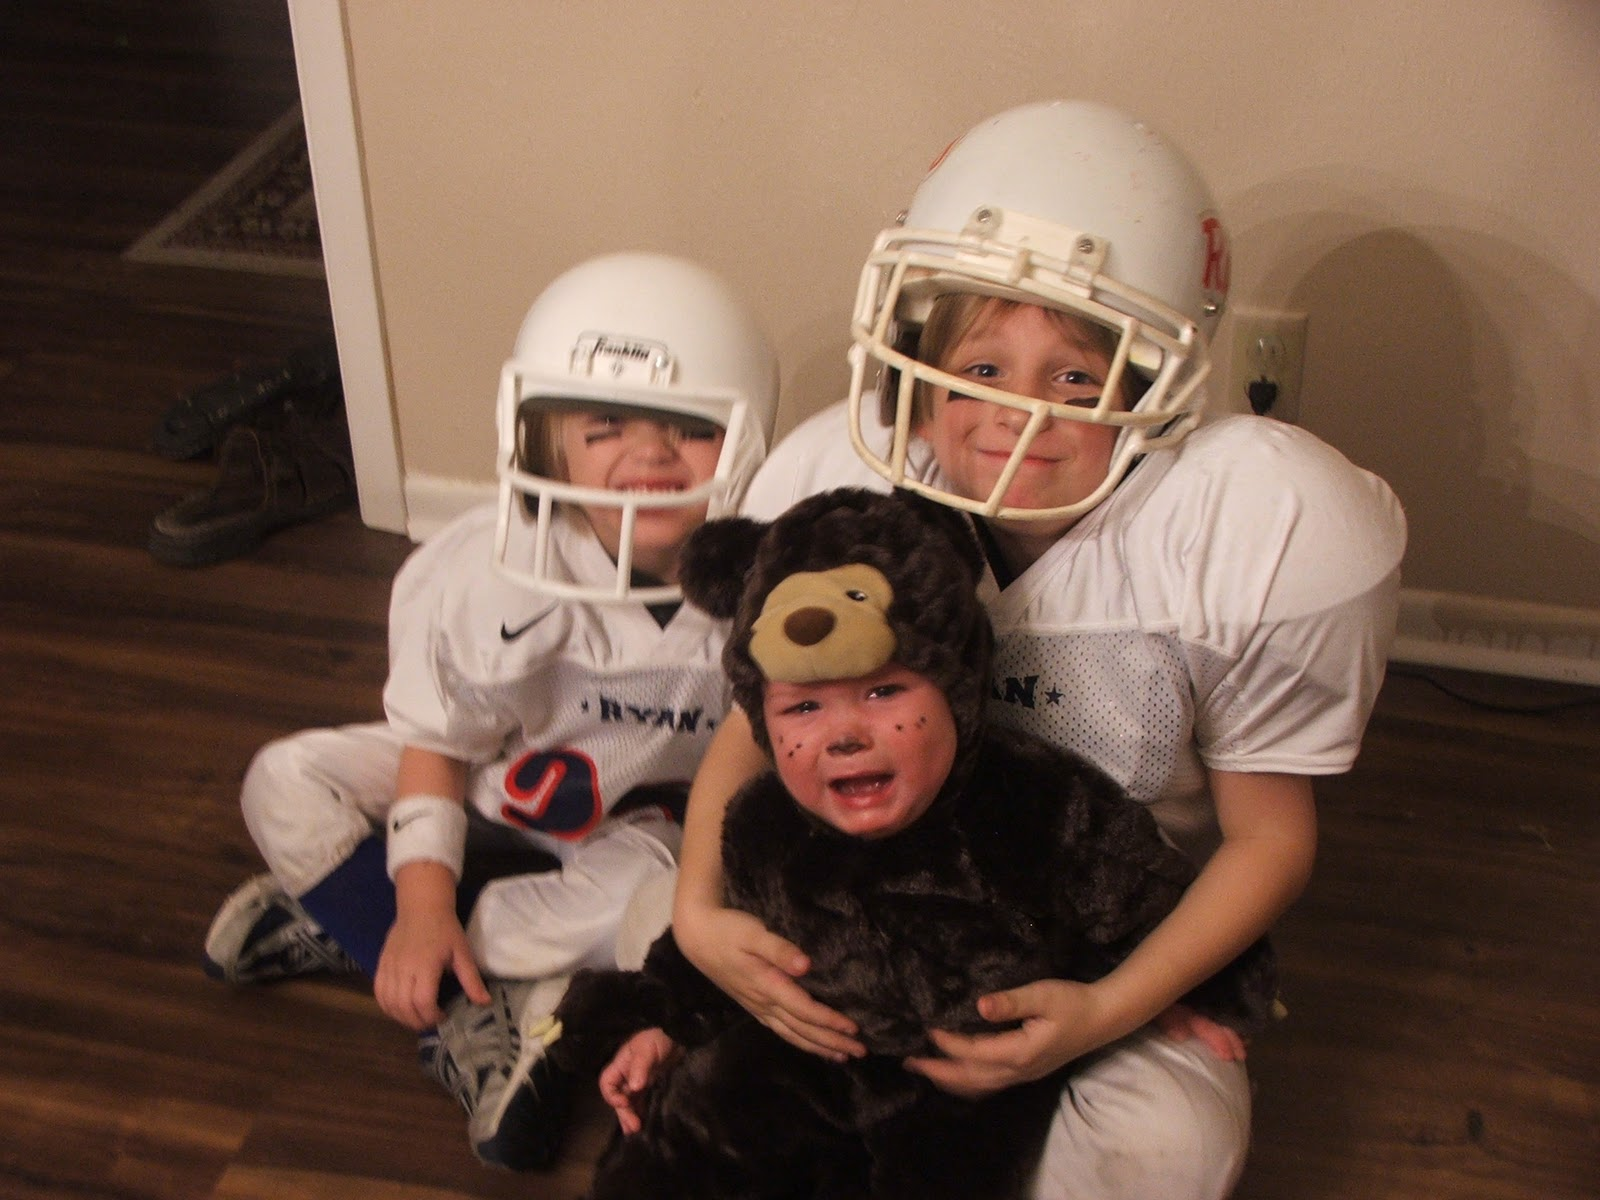 What to be for Halloween was quite the debate this year. Ryan wanted to be a v&ire. He told me the costume would be  simple  with a tuxedo ...  sc 1 st  The Sometimes Supermom & The Sometimes Supermom: Football Players and a Grizzly Bear